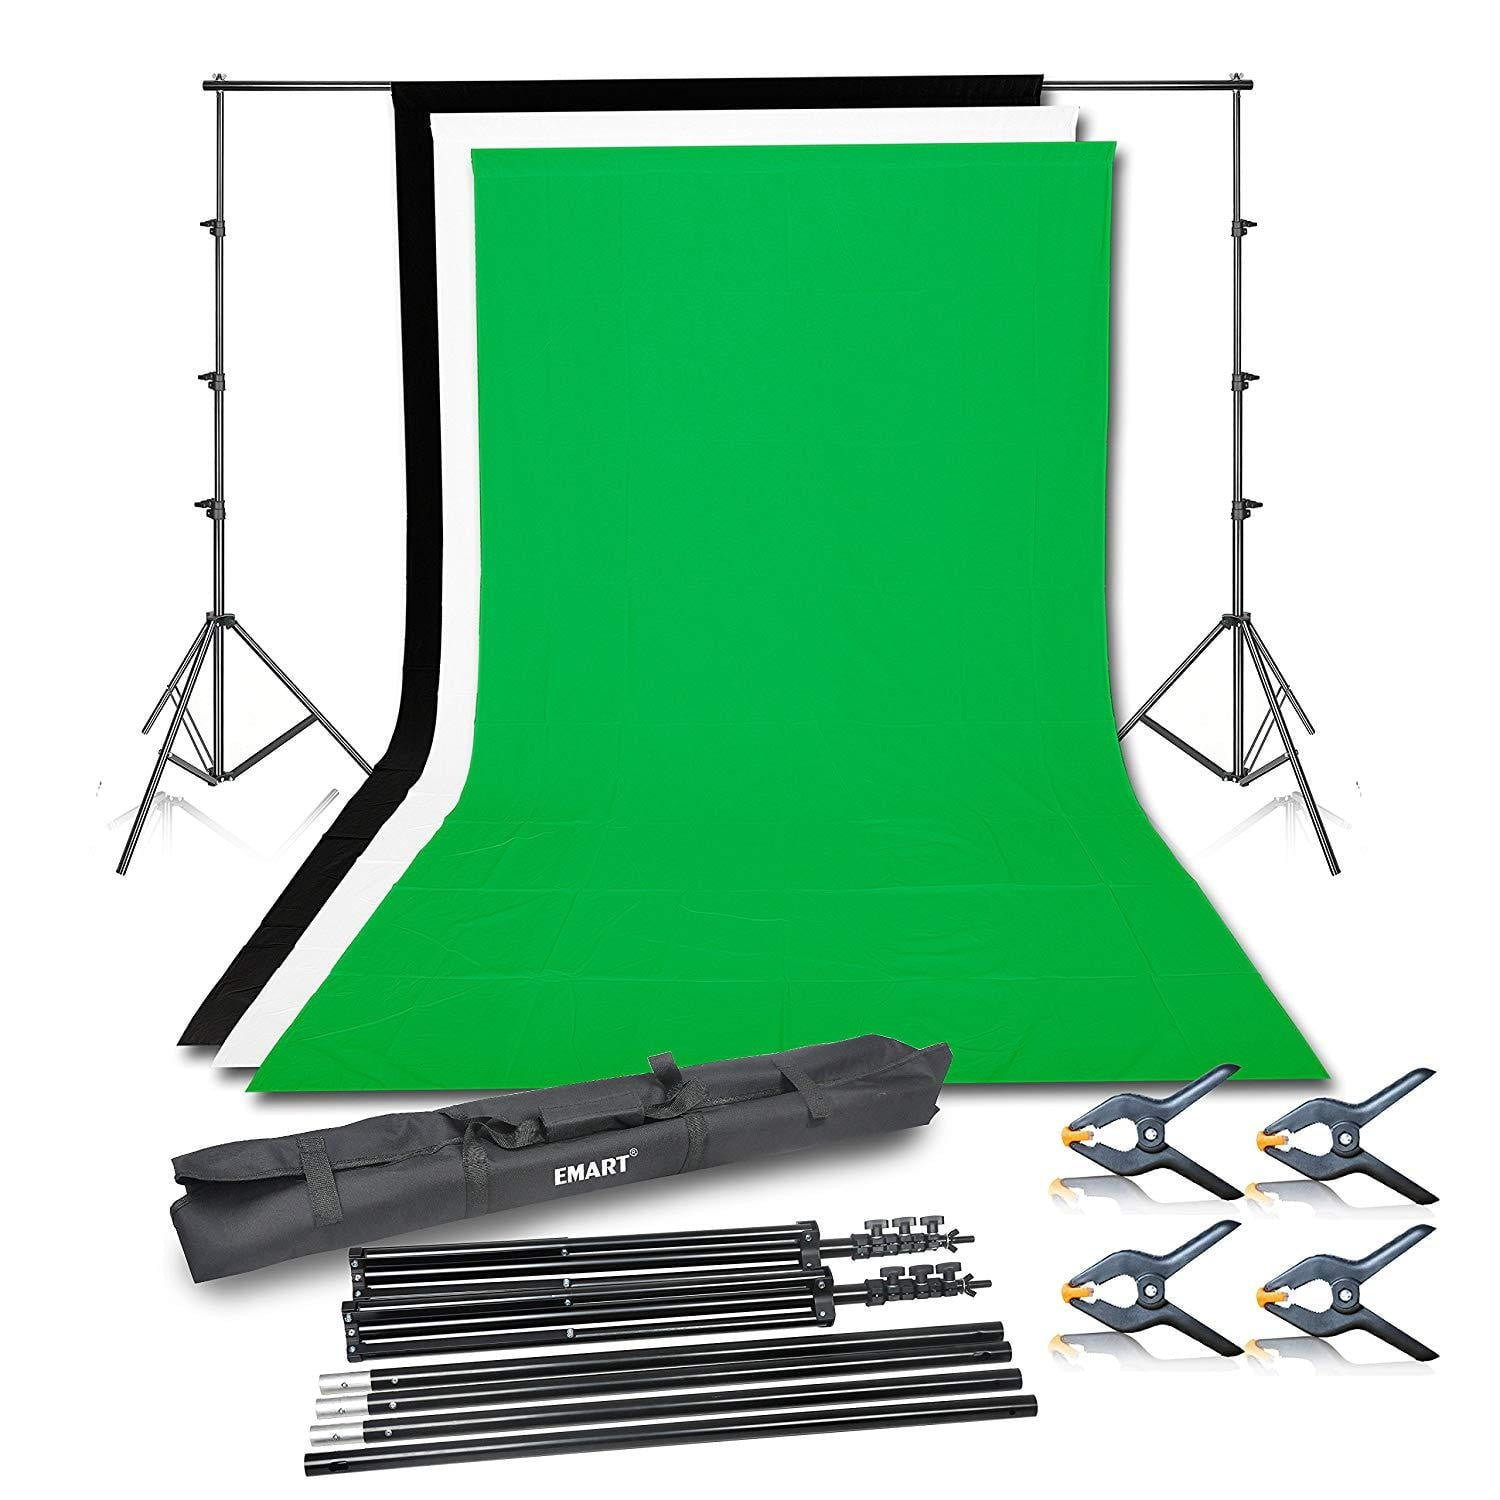 Emart Photo Video Studio Background Backdrop Stand Kit - EMART8